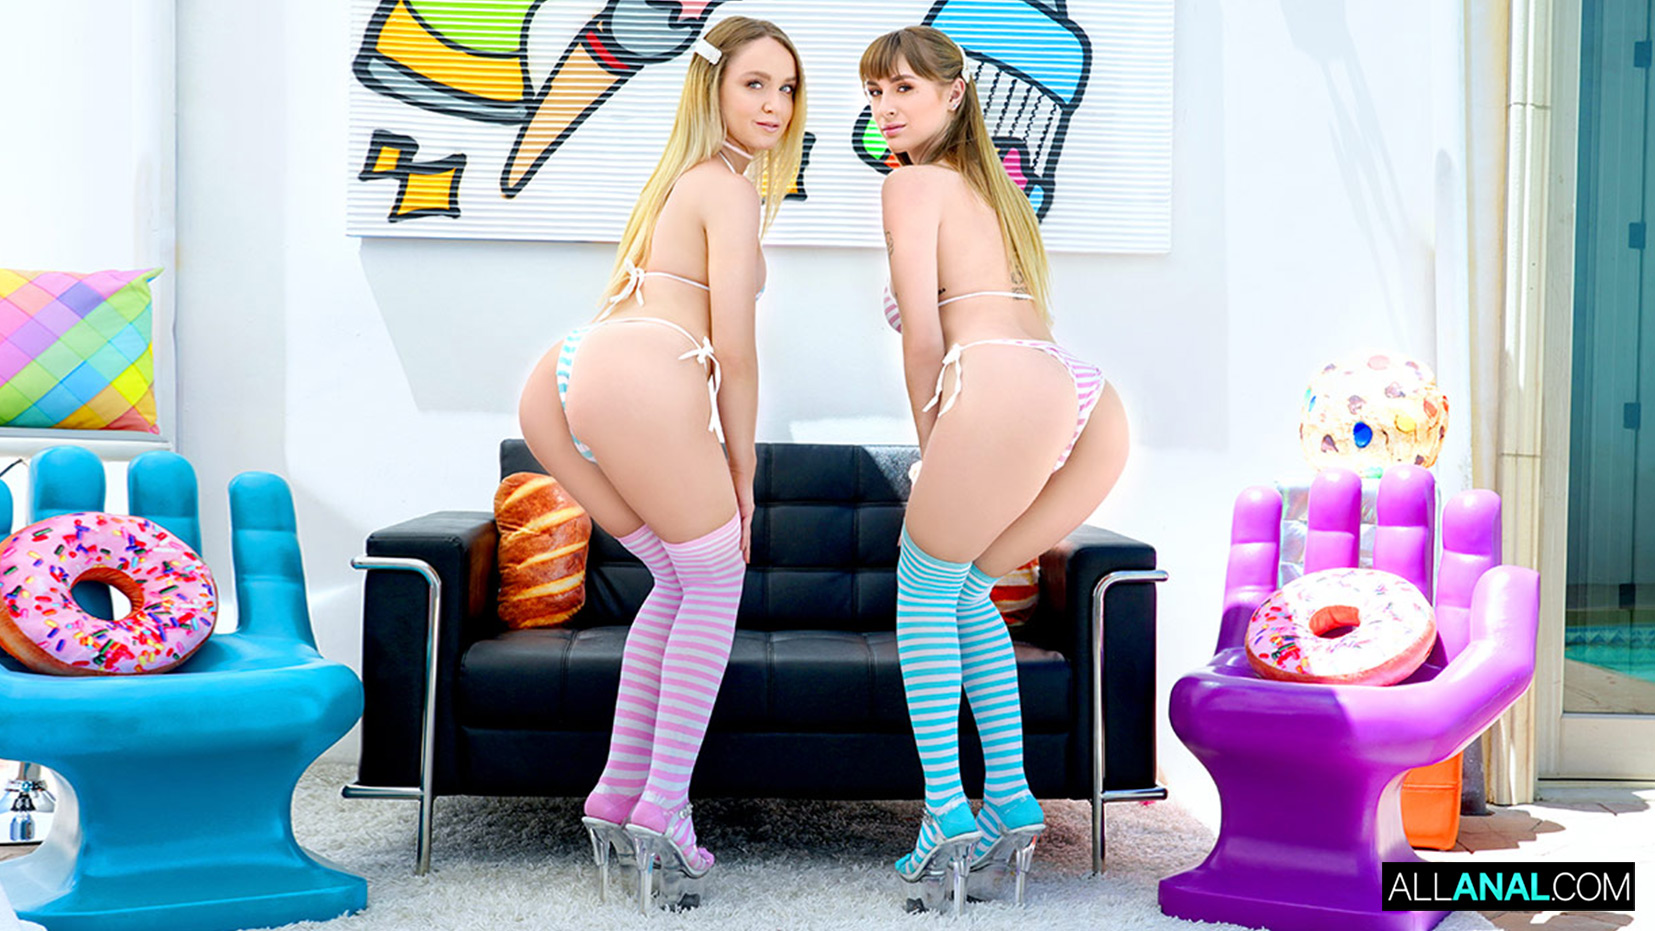 Download AllAnal.com - Ass Gaping Adventures with Nicole & Angel